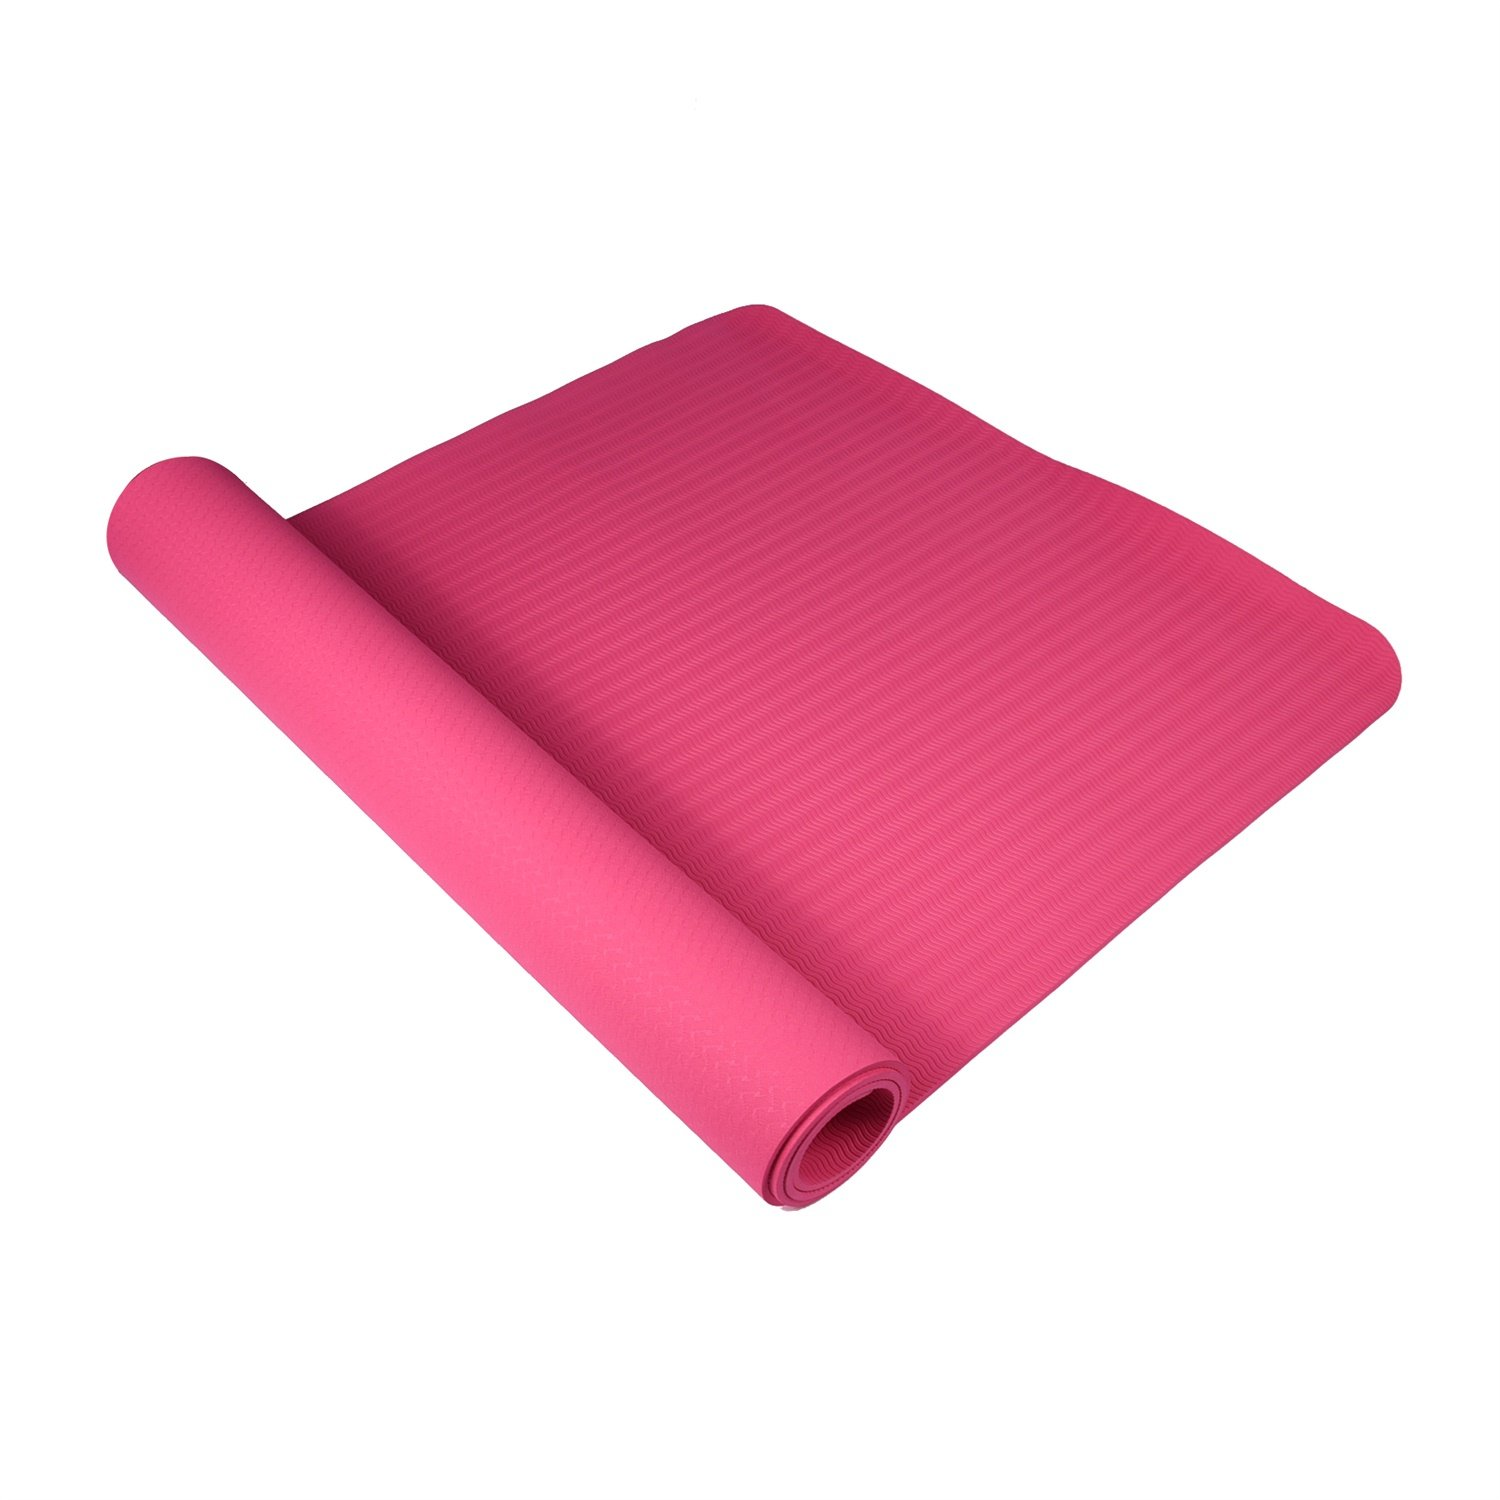 Textured Non-Slip Surface Topyea Yoga Mat,Exercise Mats,Womens Yoga Mat with Carrying Strap,1//4 Inch 1//4 Inch Textured Non-Slip Surface,Non-Toxic Material for Yoga,Workout,Sports and Exercise 71 x 24 71 x 24